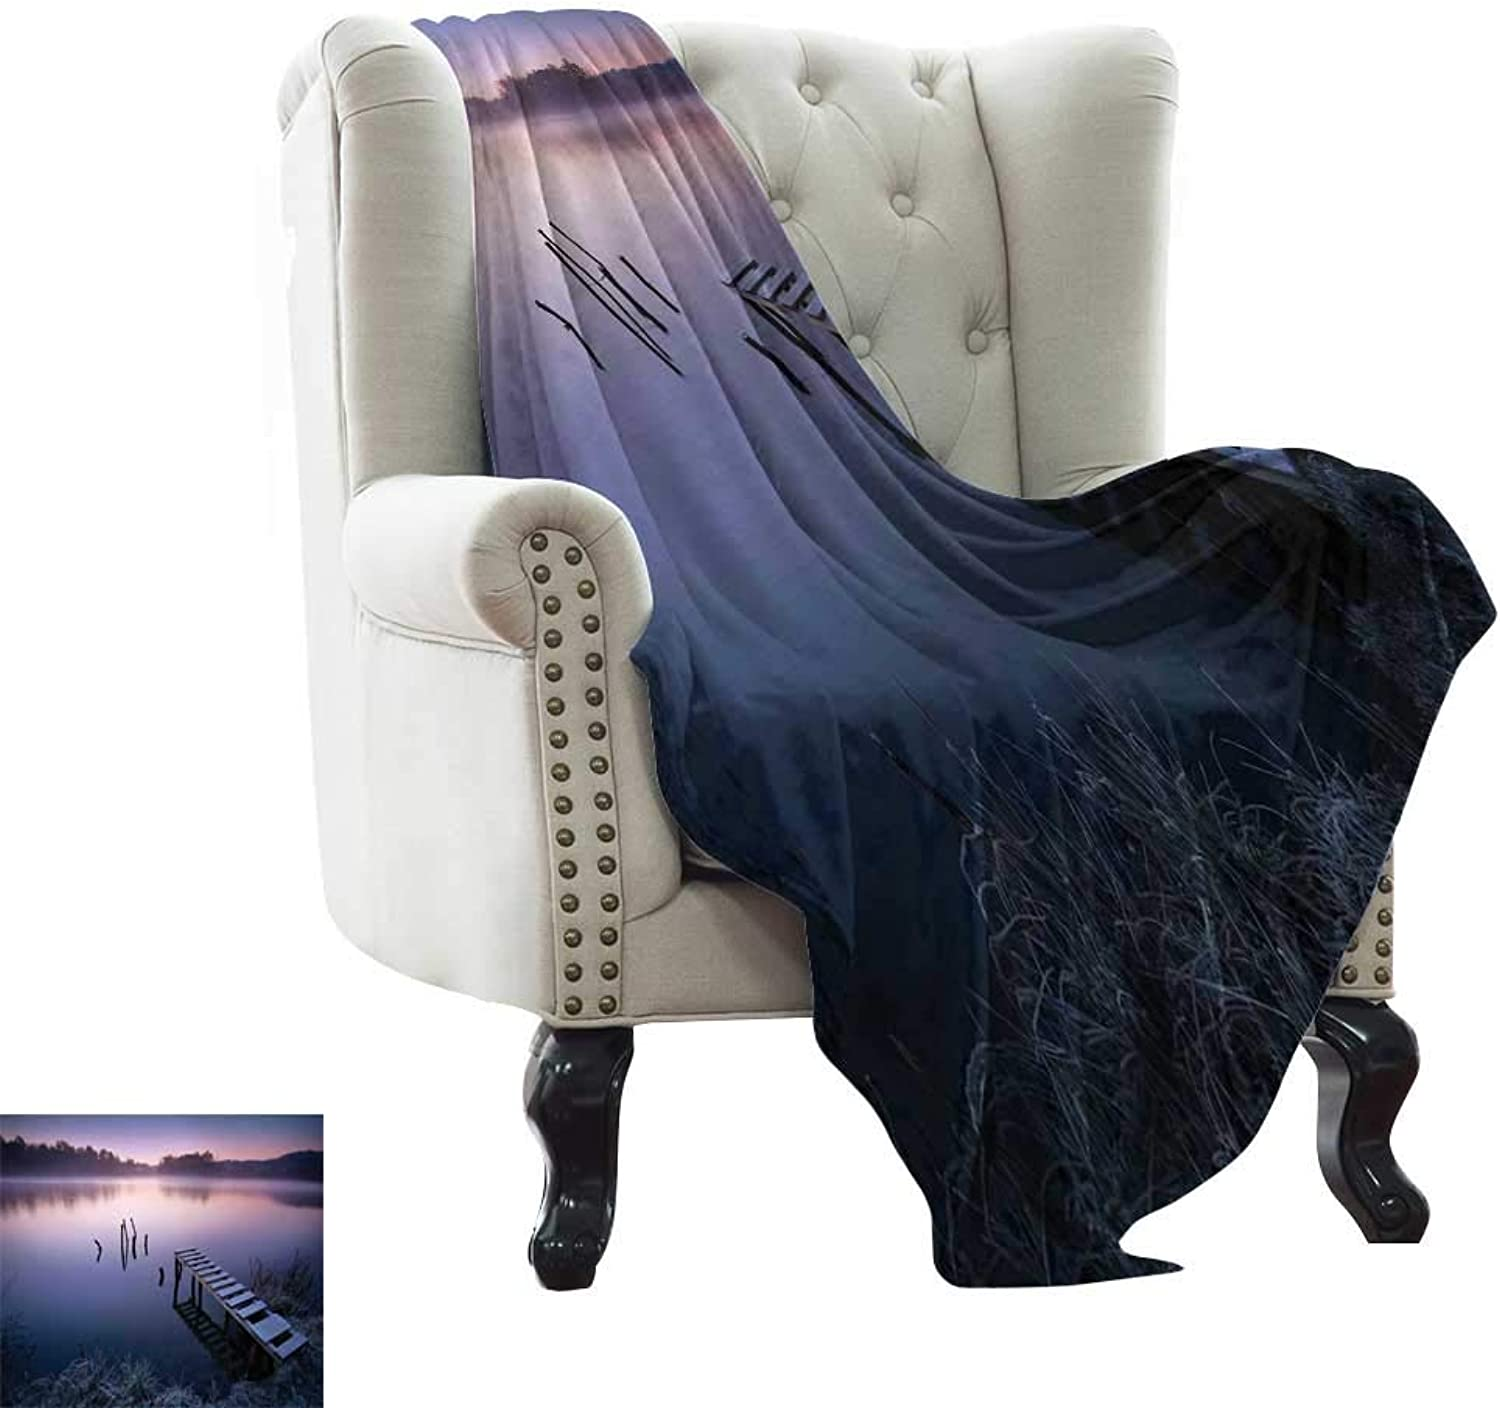 Camping Blanket Seascape,Misty Lake Wooden Pier Distant Forest in Early Morning Fantasy Dreamy,Lavender Navy bluee Weighted Blanket for Adults Kids, Better Deeper Sleep 35 x60